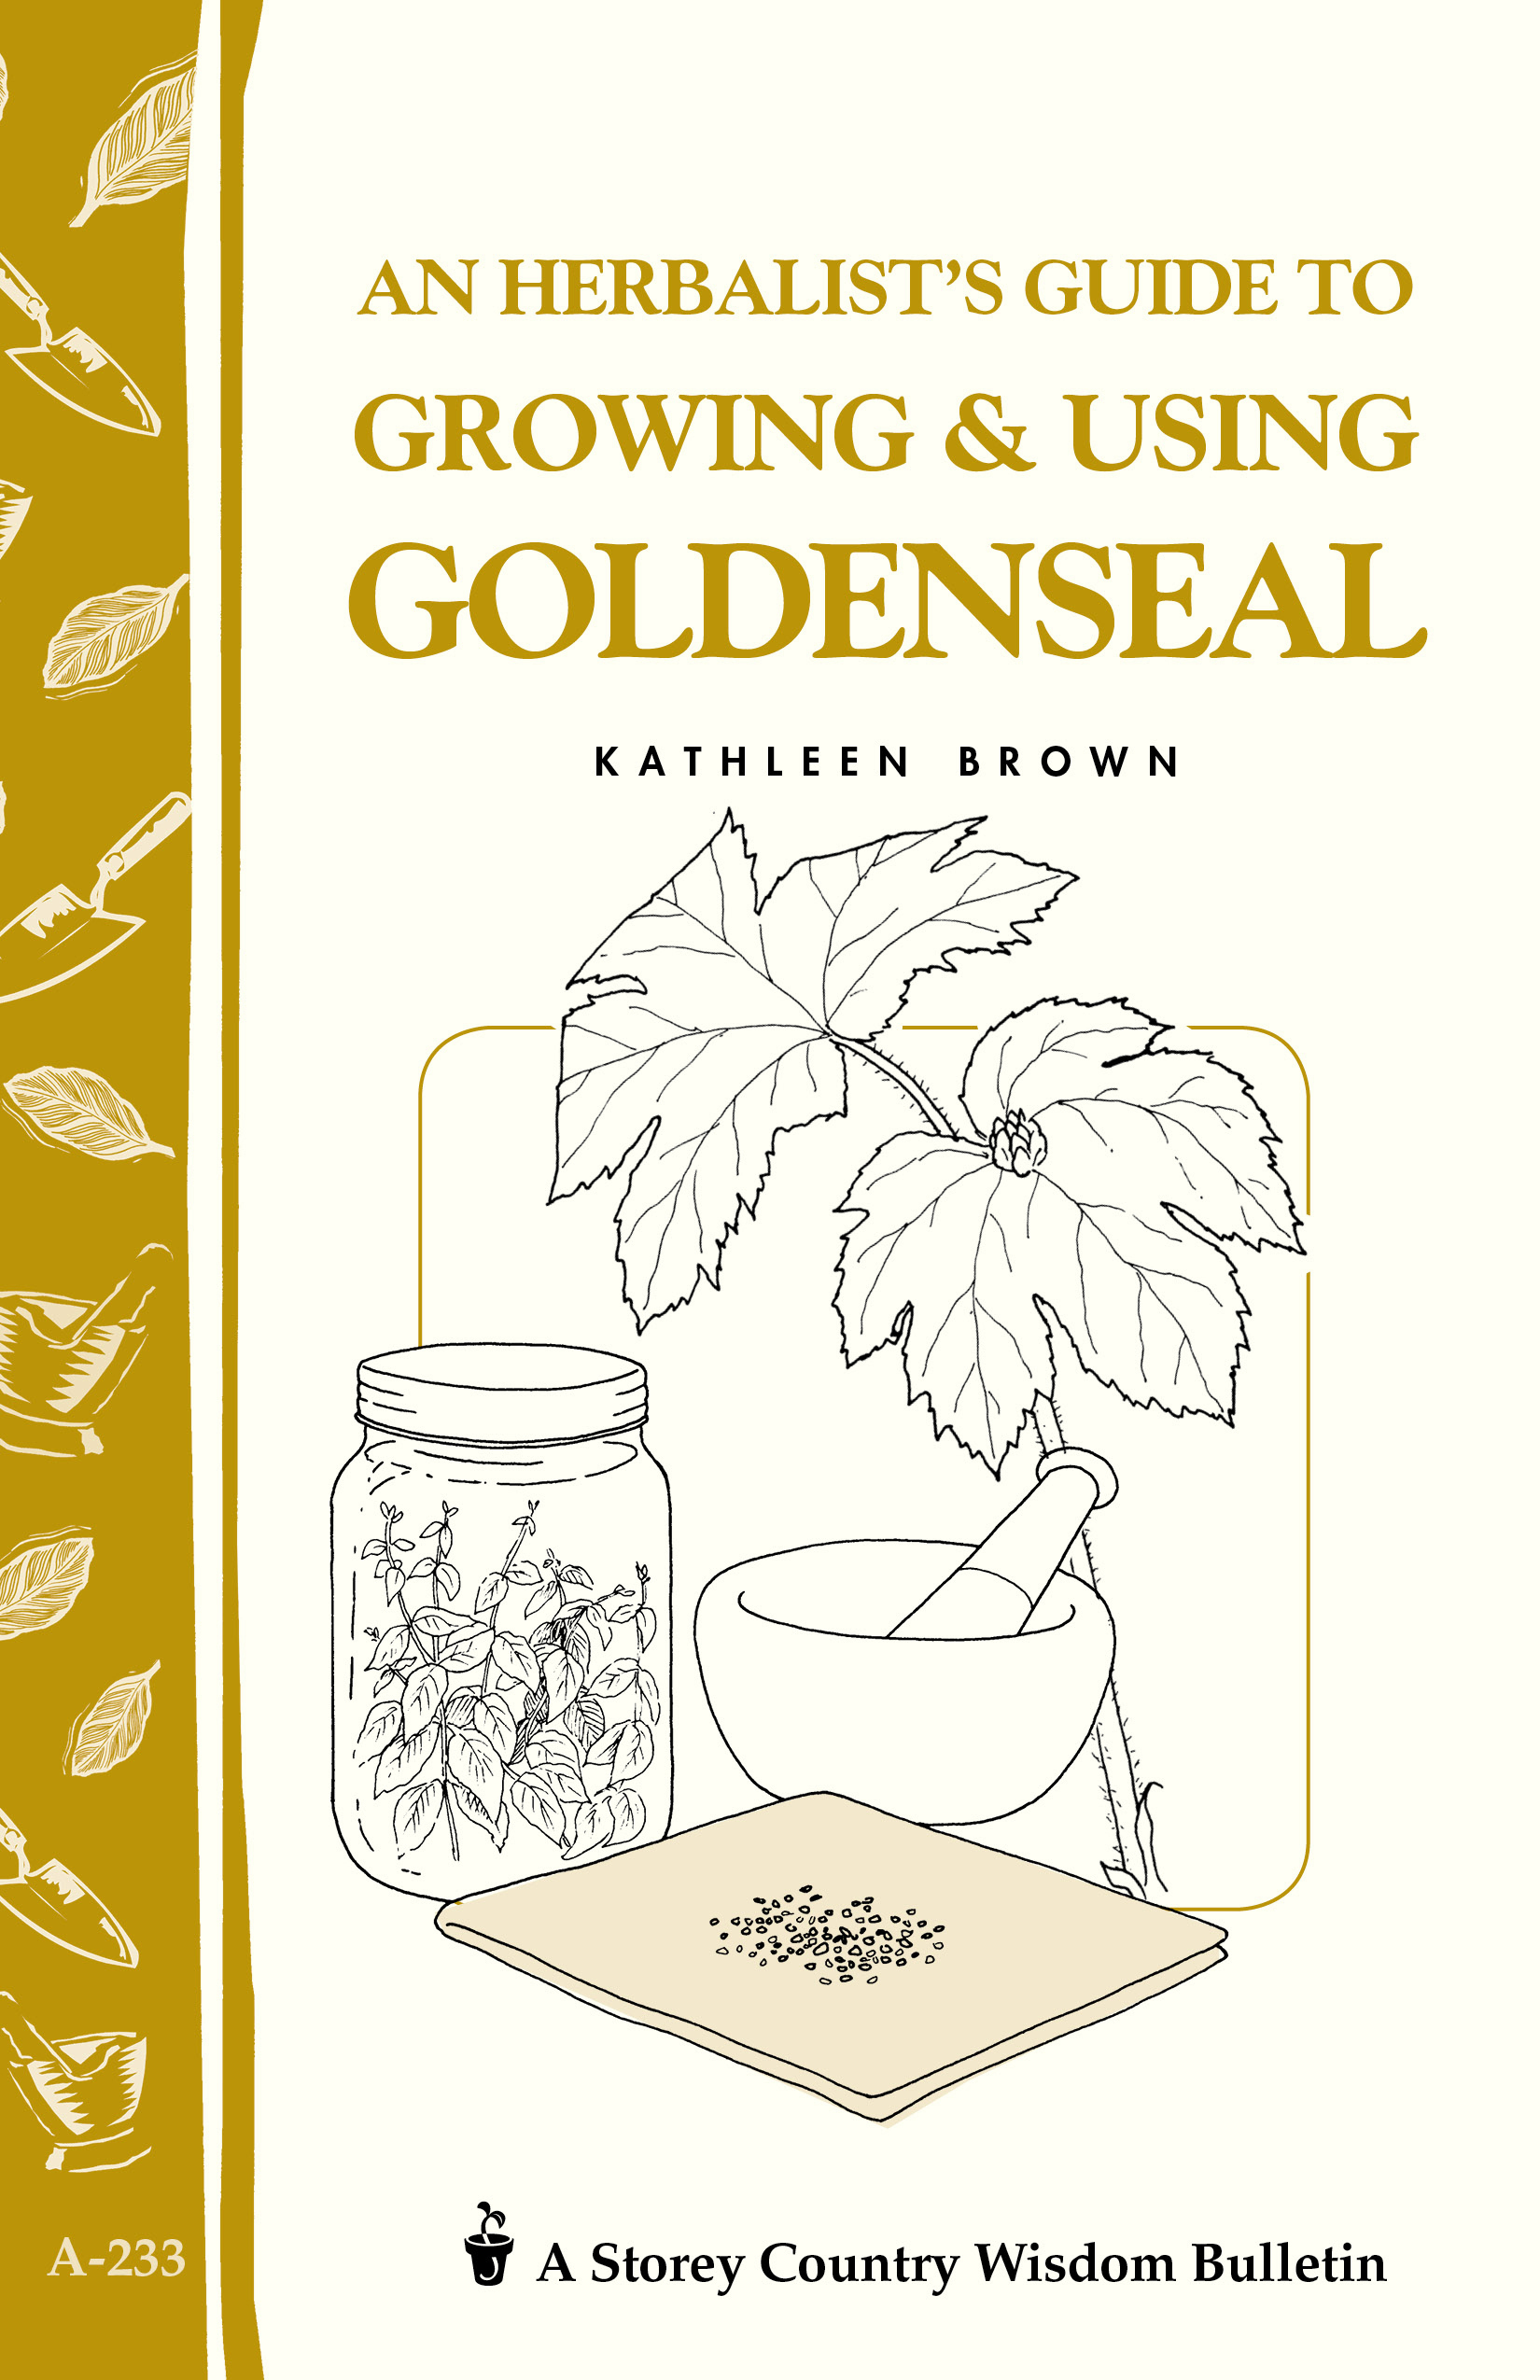 An Herbalist's Guide to Growing & Using Goldenseal Storey's Country Wisdom Bulletin A-233 - Kathleen Brown